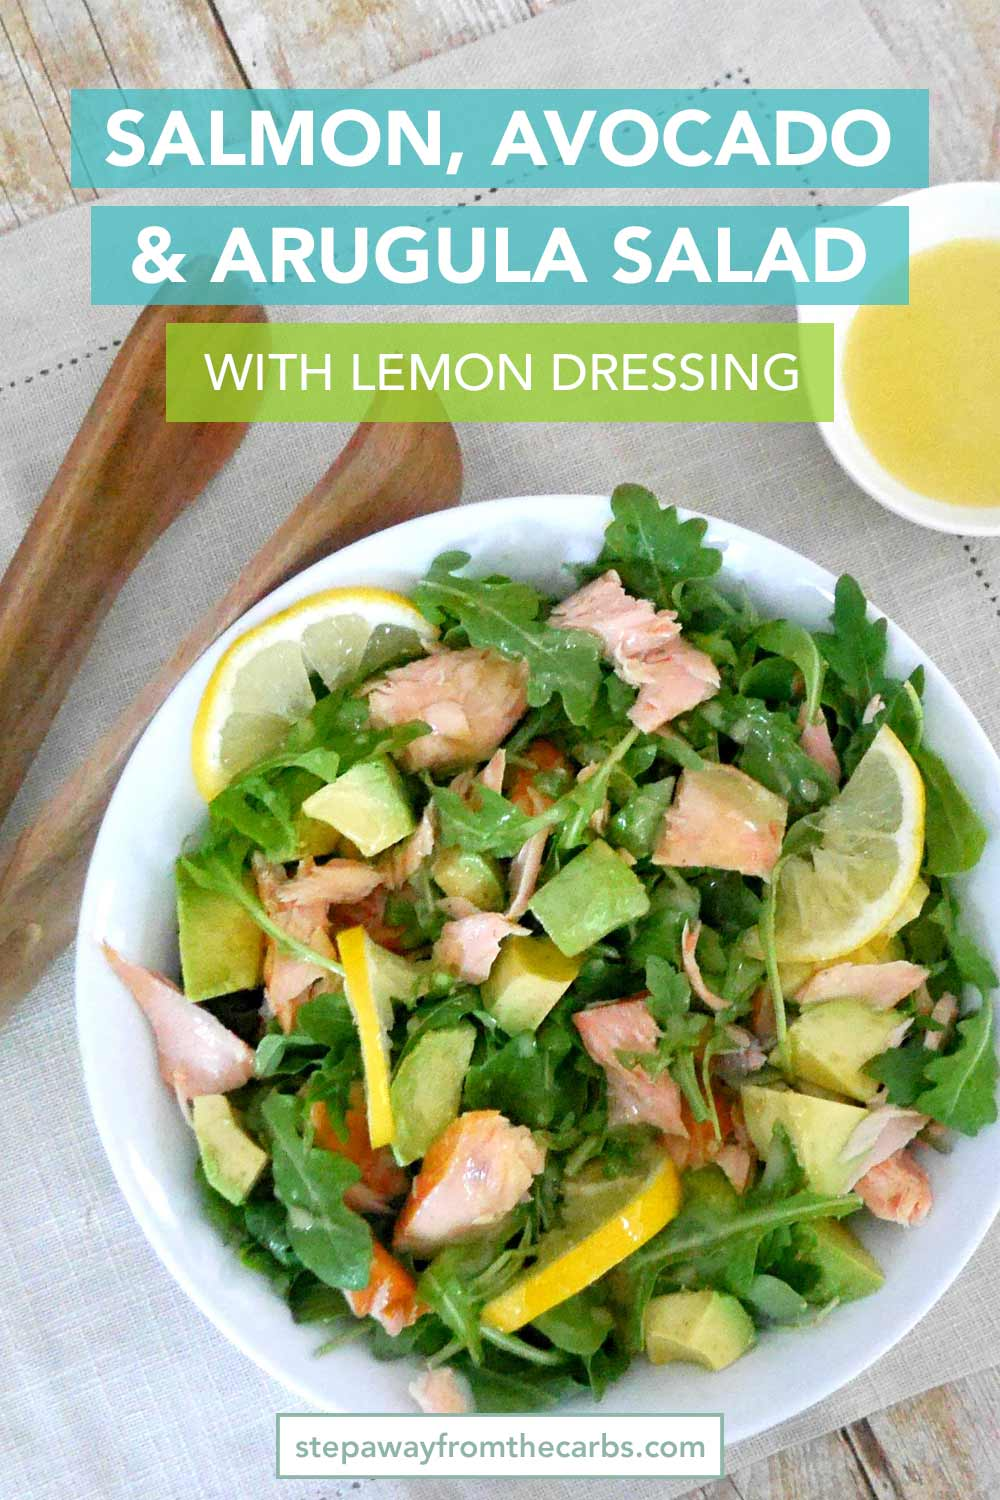 Salmon, Avocado and Arugula Salad with Lemon Dressing - a wonderful low carb and keto recipe